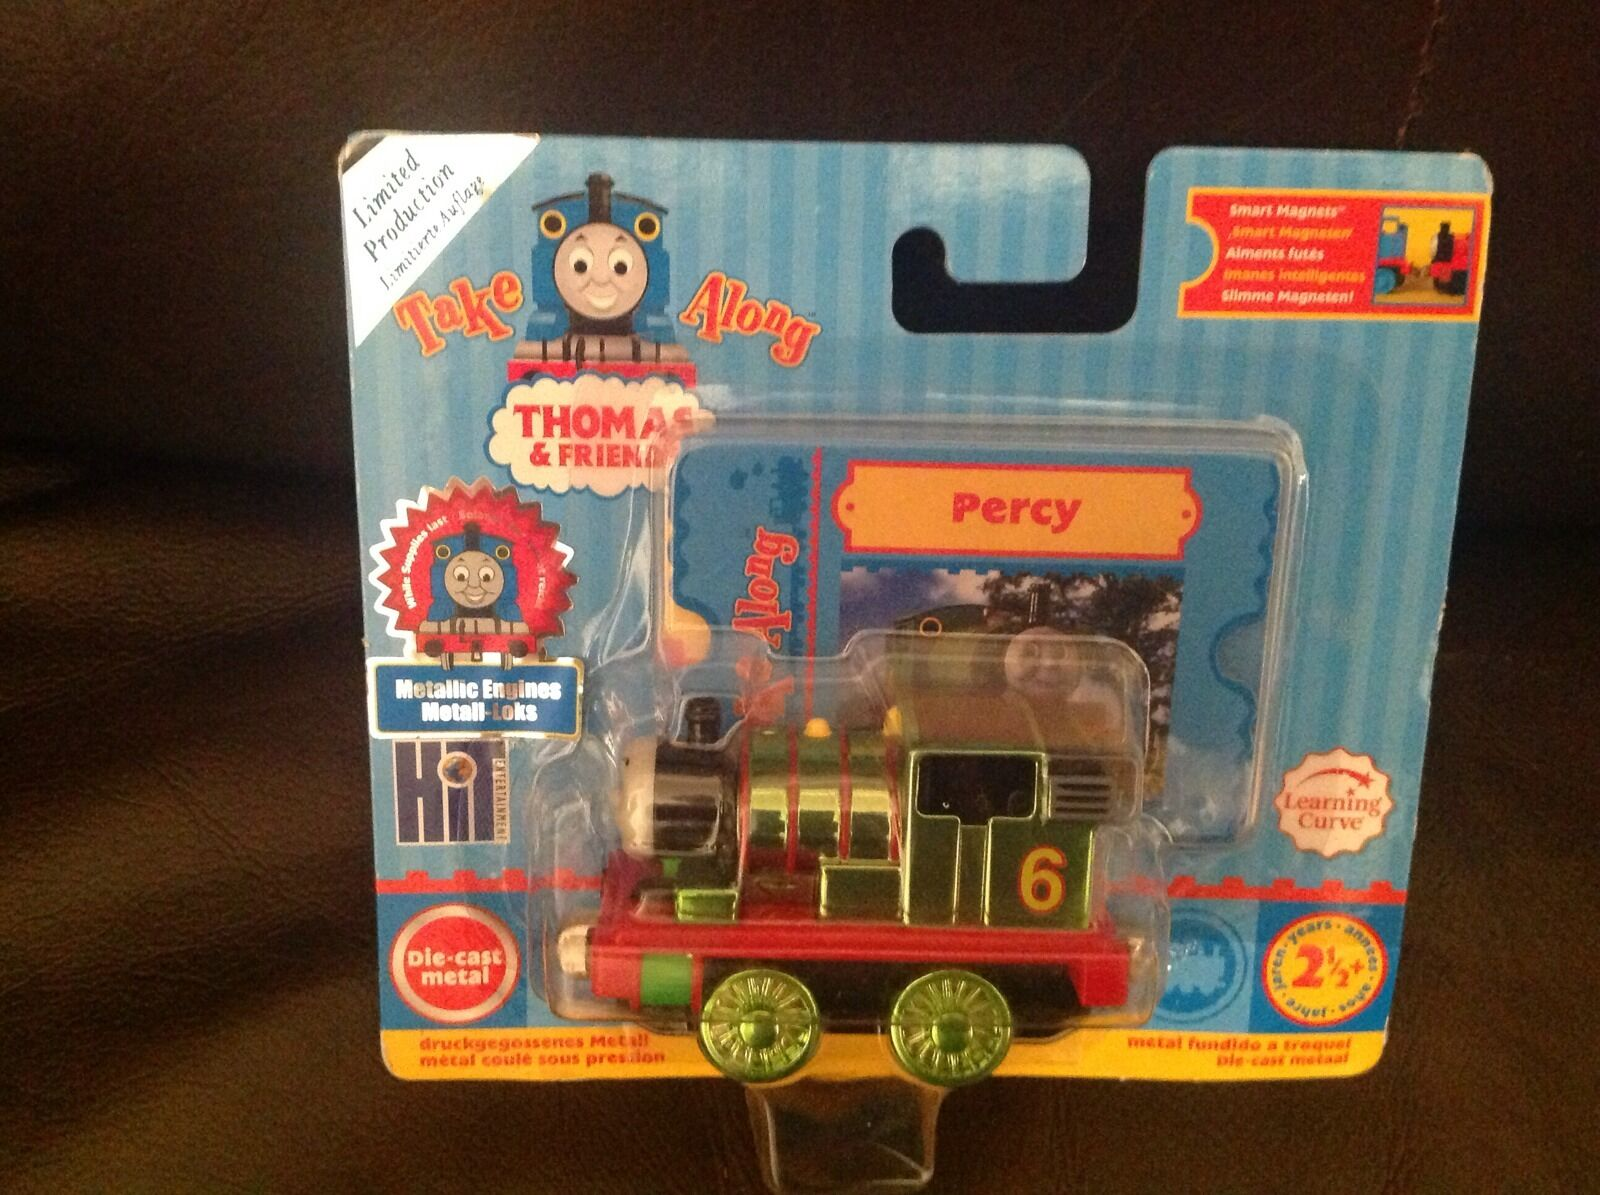 Thomas take along limited edition percy die-cast metal metallic engine very rare